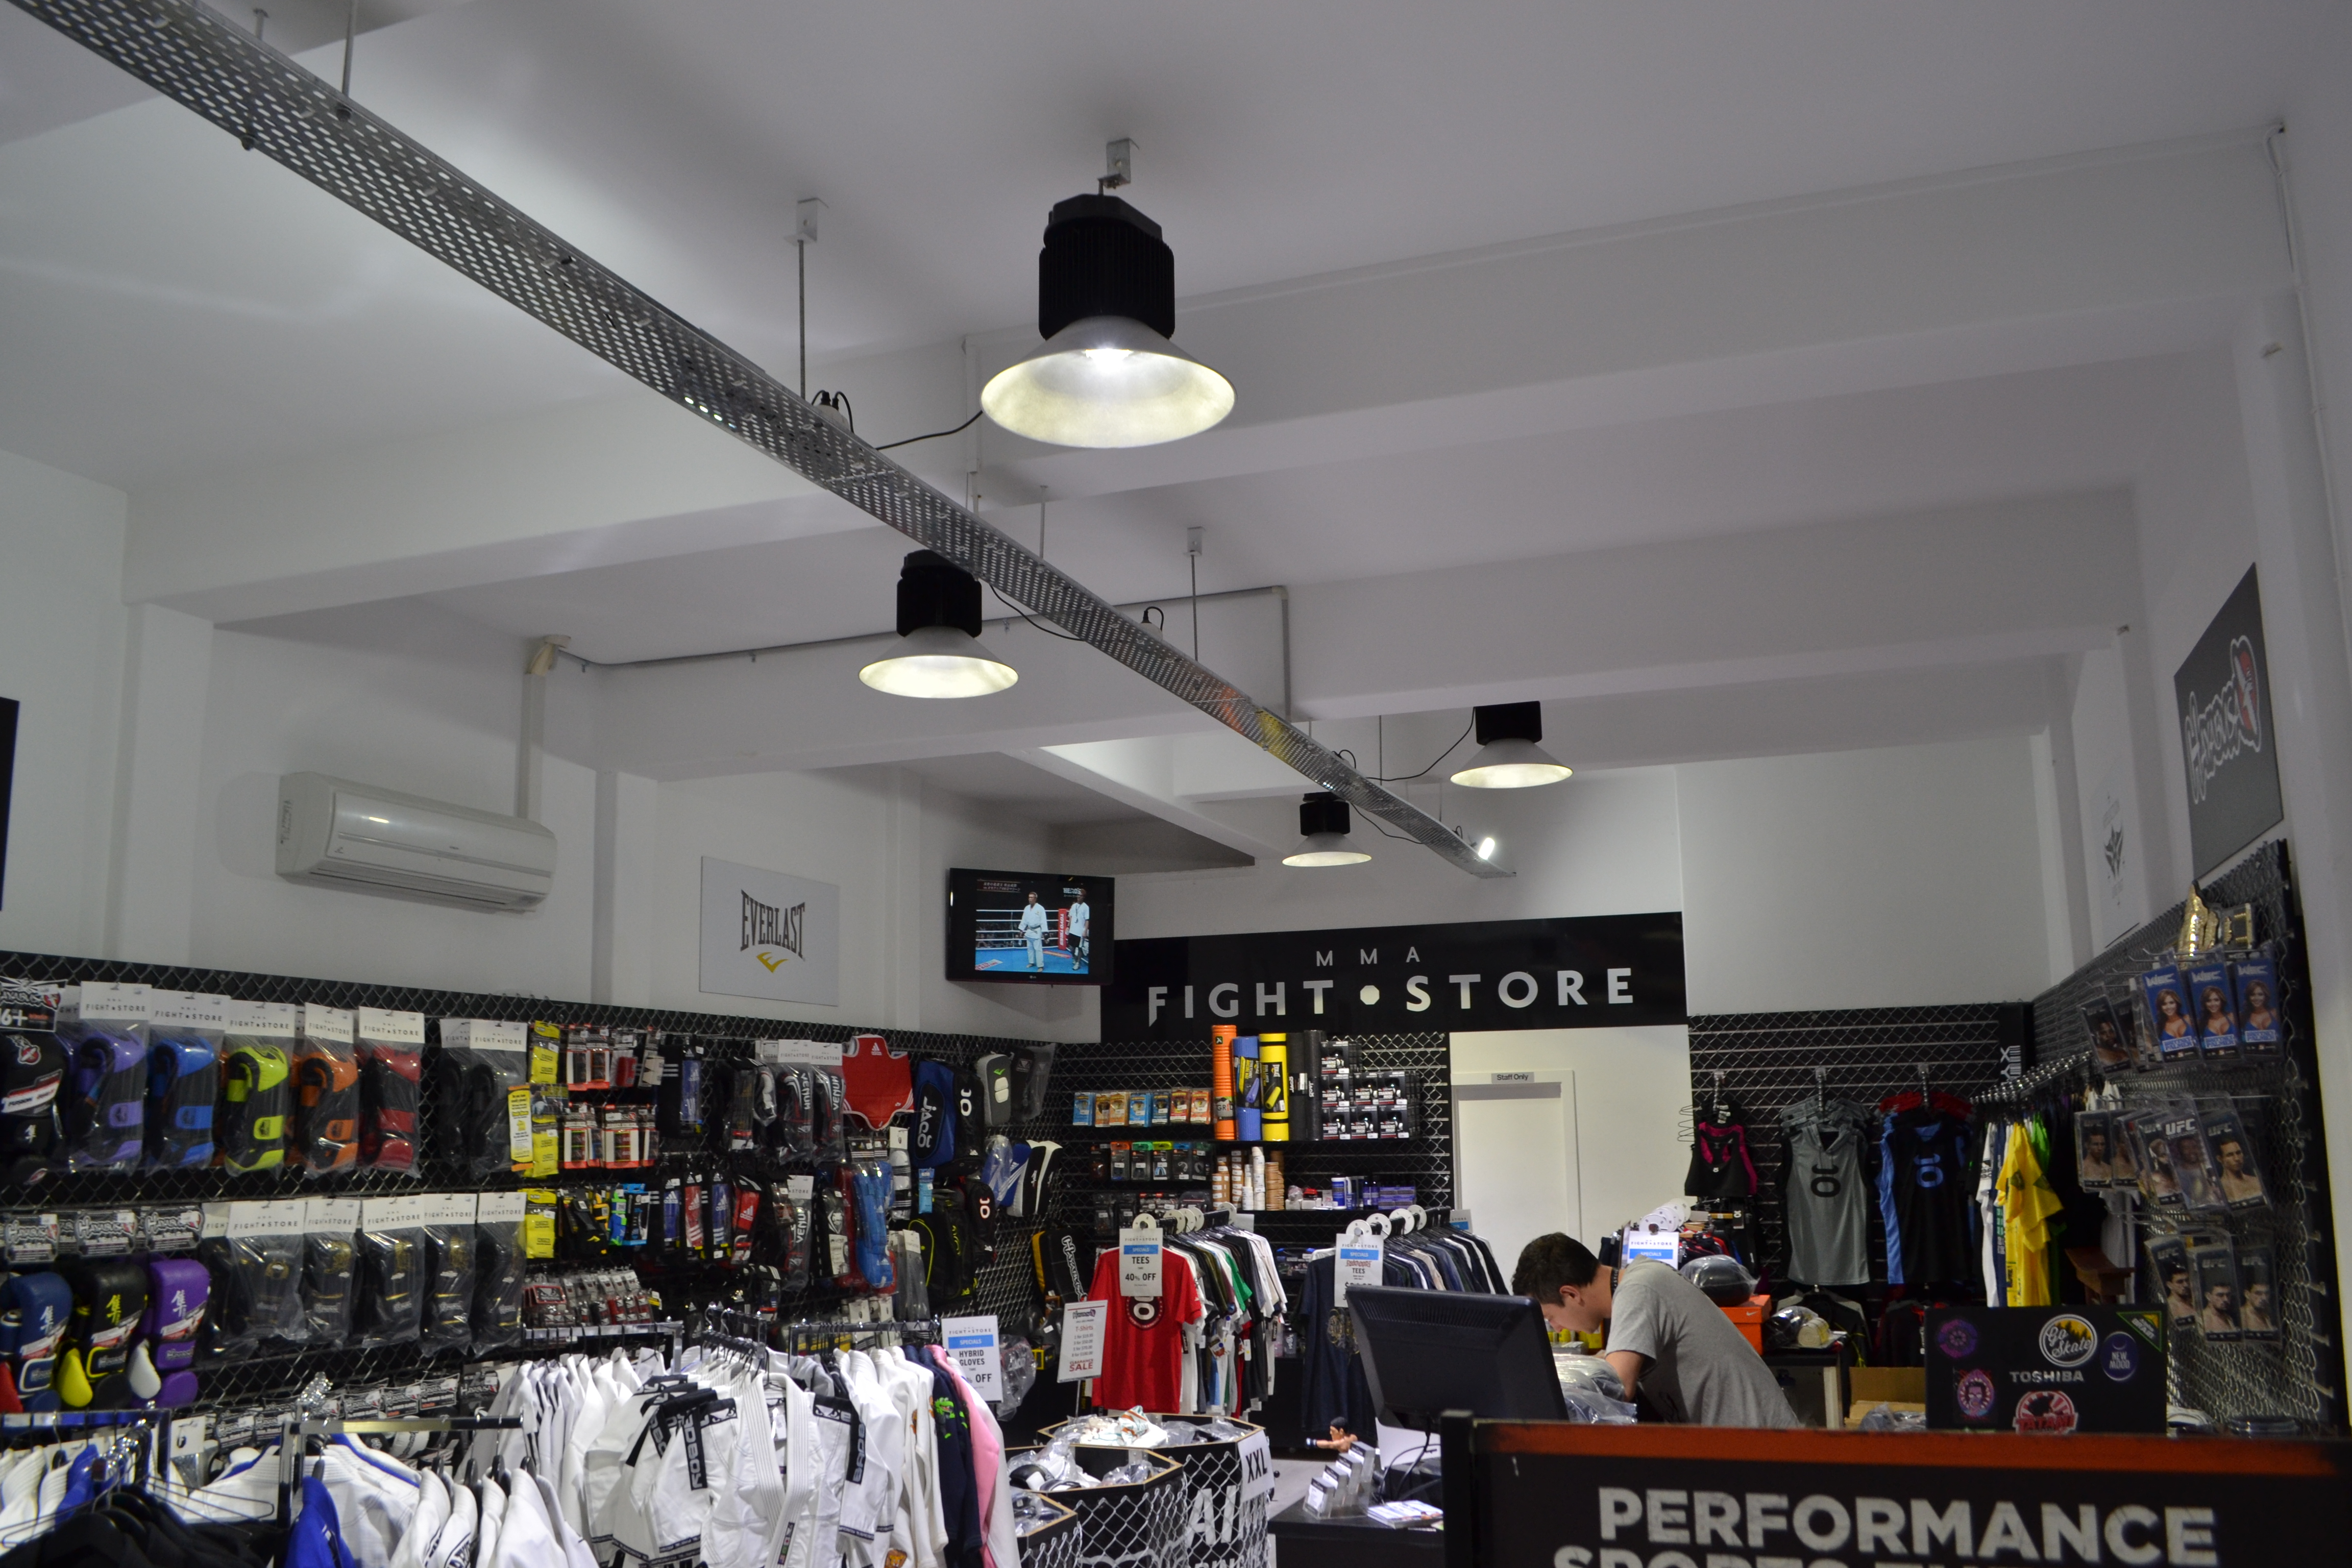 Mma clothing store. Clothing stores